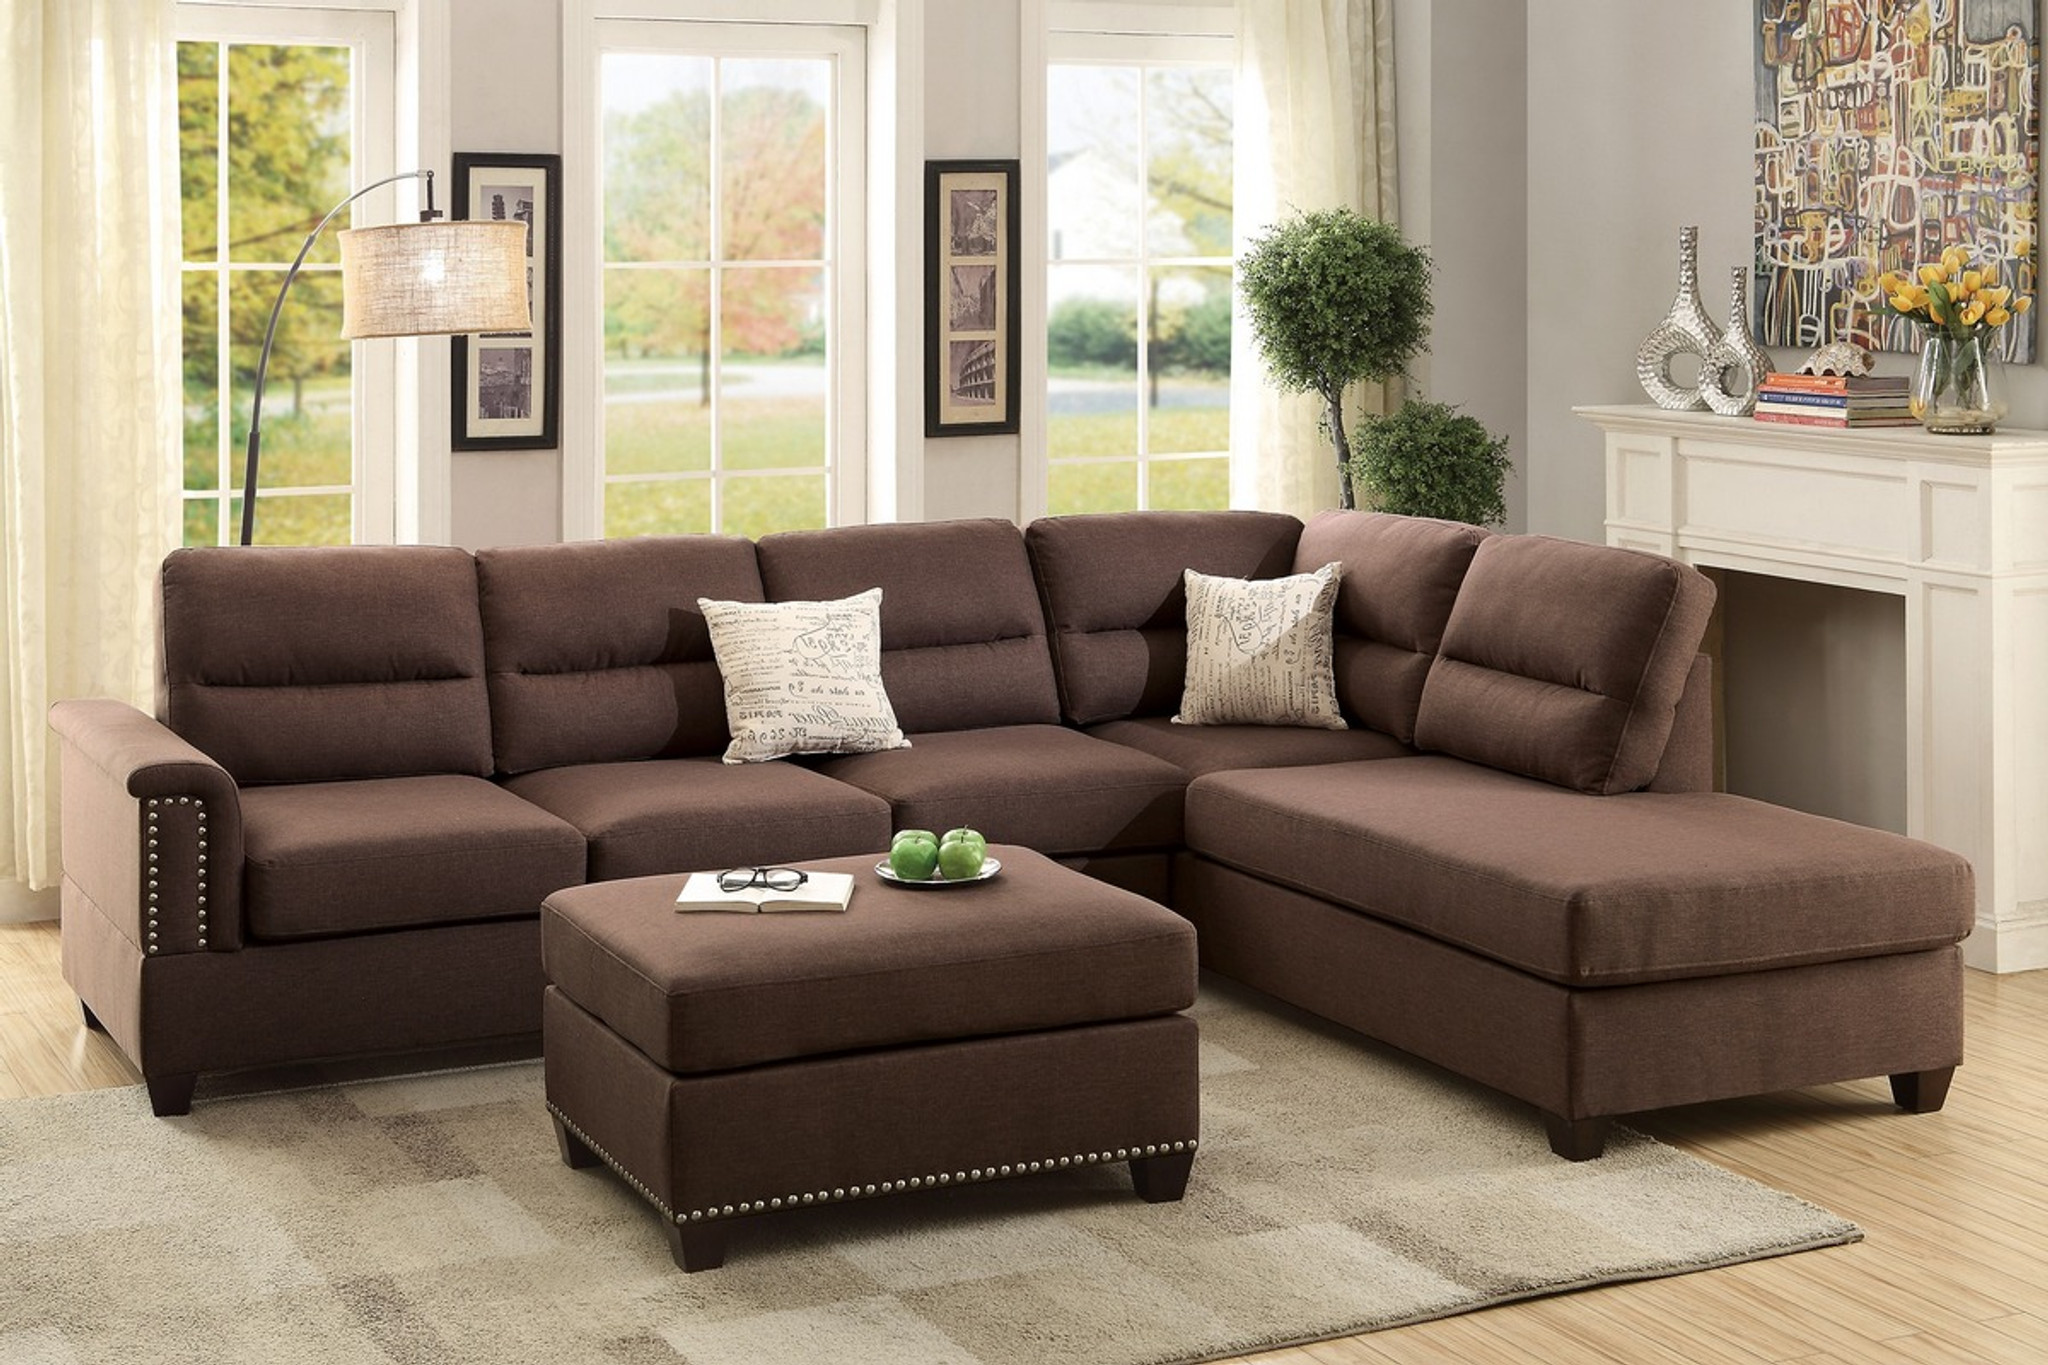 F7613-3PCS CHOCOLATE SECTIONAL SOFA SET WITH OTTOMAN By Poundex